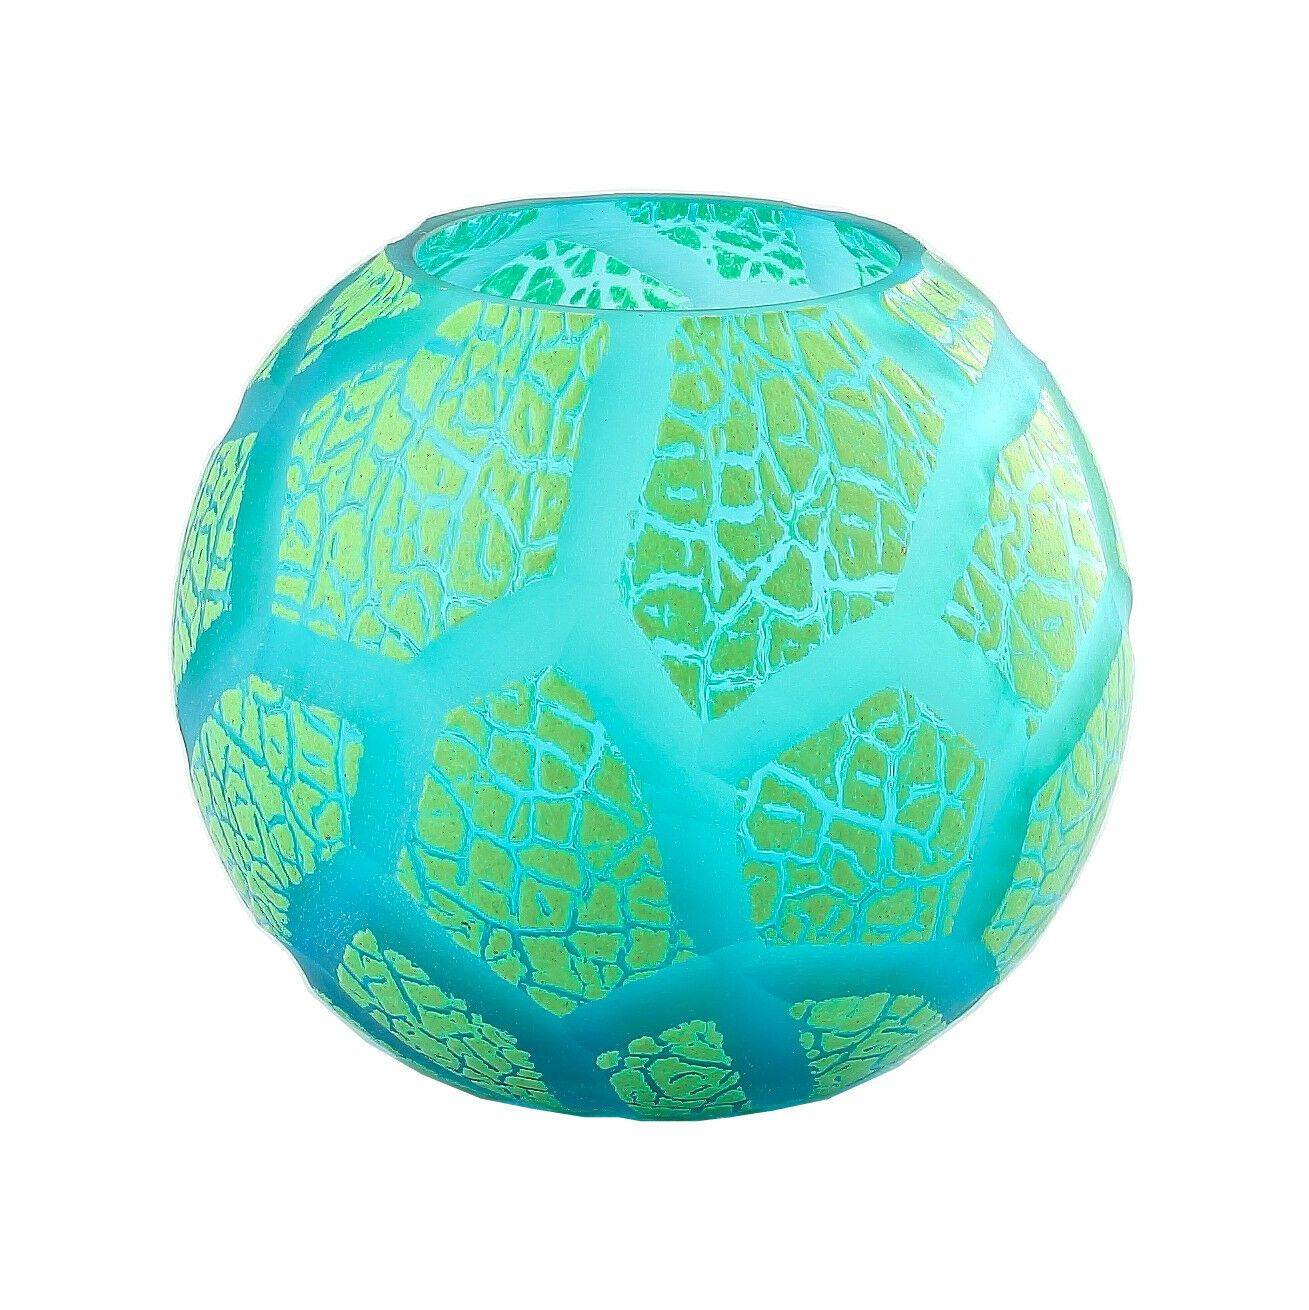 """New 6/"""" Hand Blown Glass Art Bubble Vase Bowl Green Patterned Decorative"""